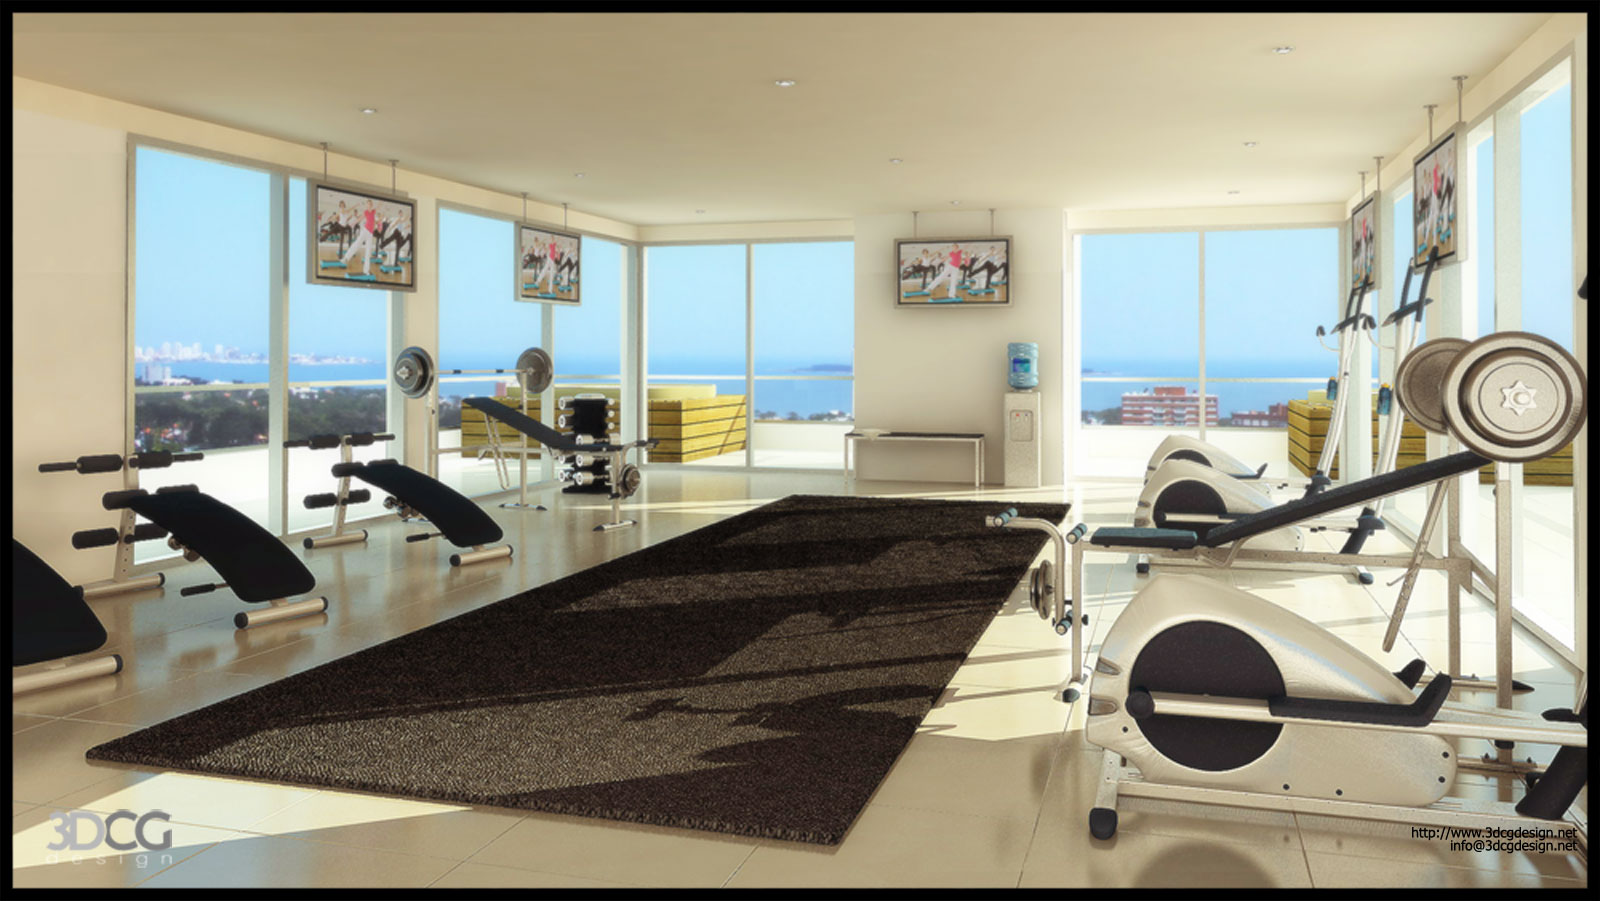 Home Gym Design Ideas 20 of the most outrageous home gym designs 3dcg Design